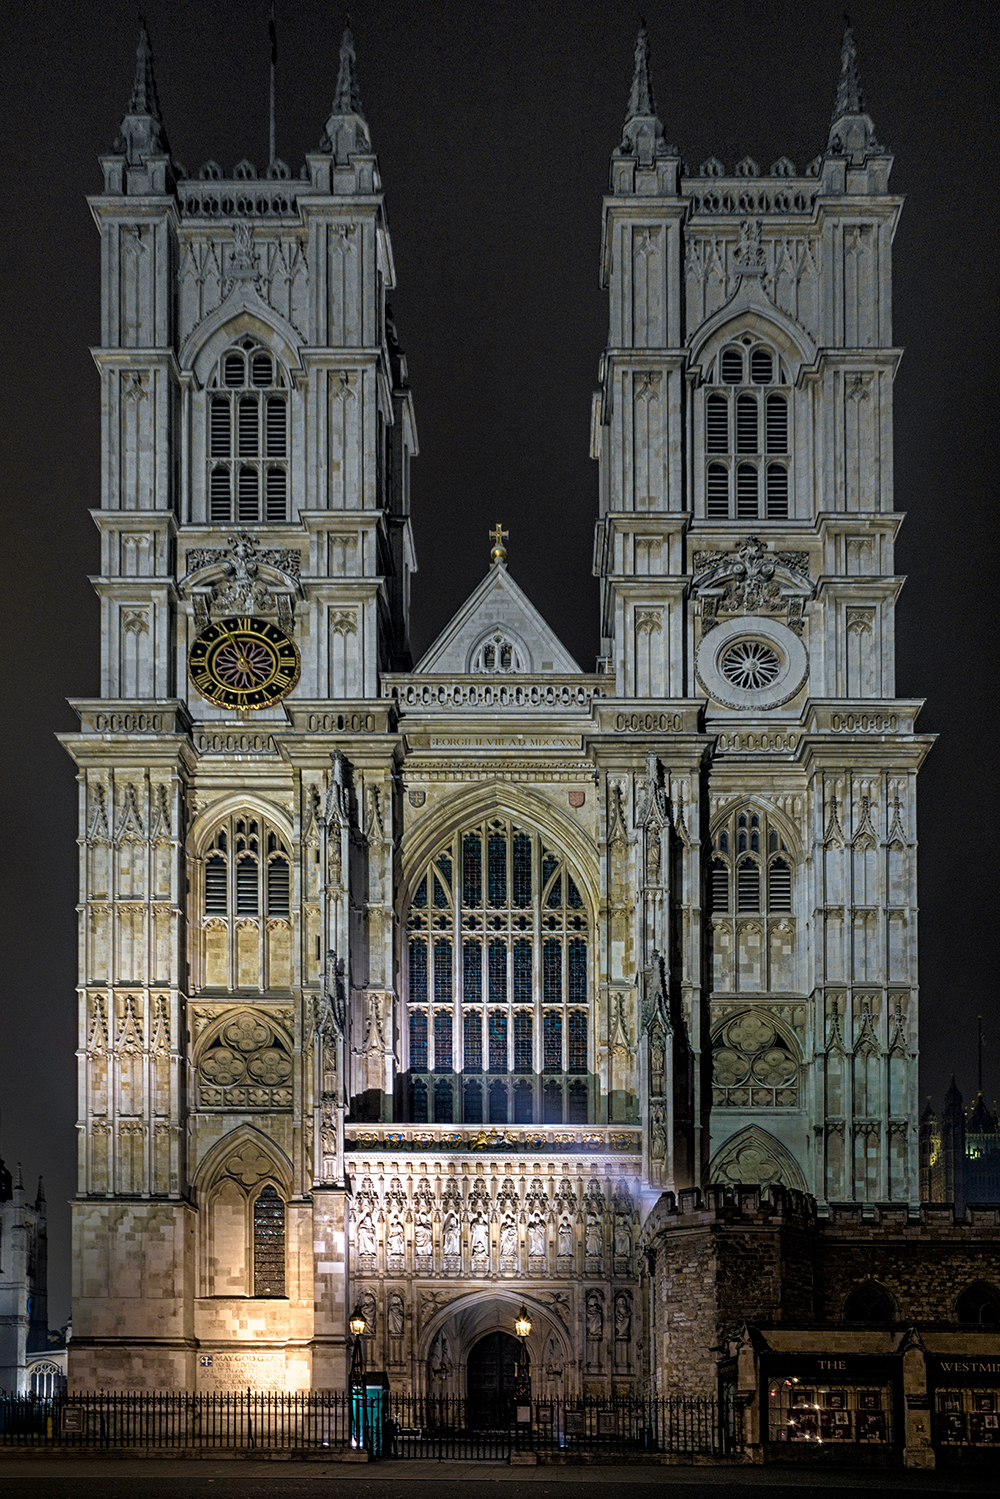 Westminster Abbey photographed at night